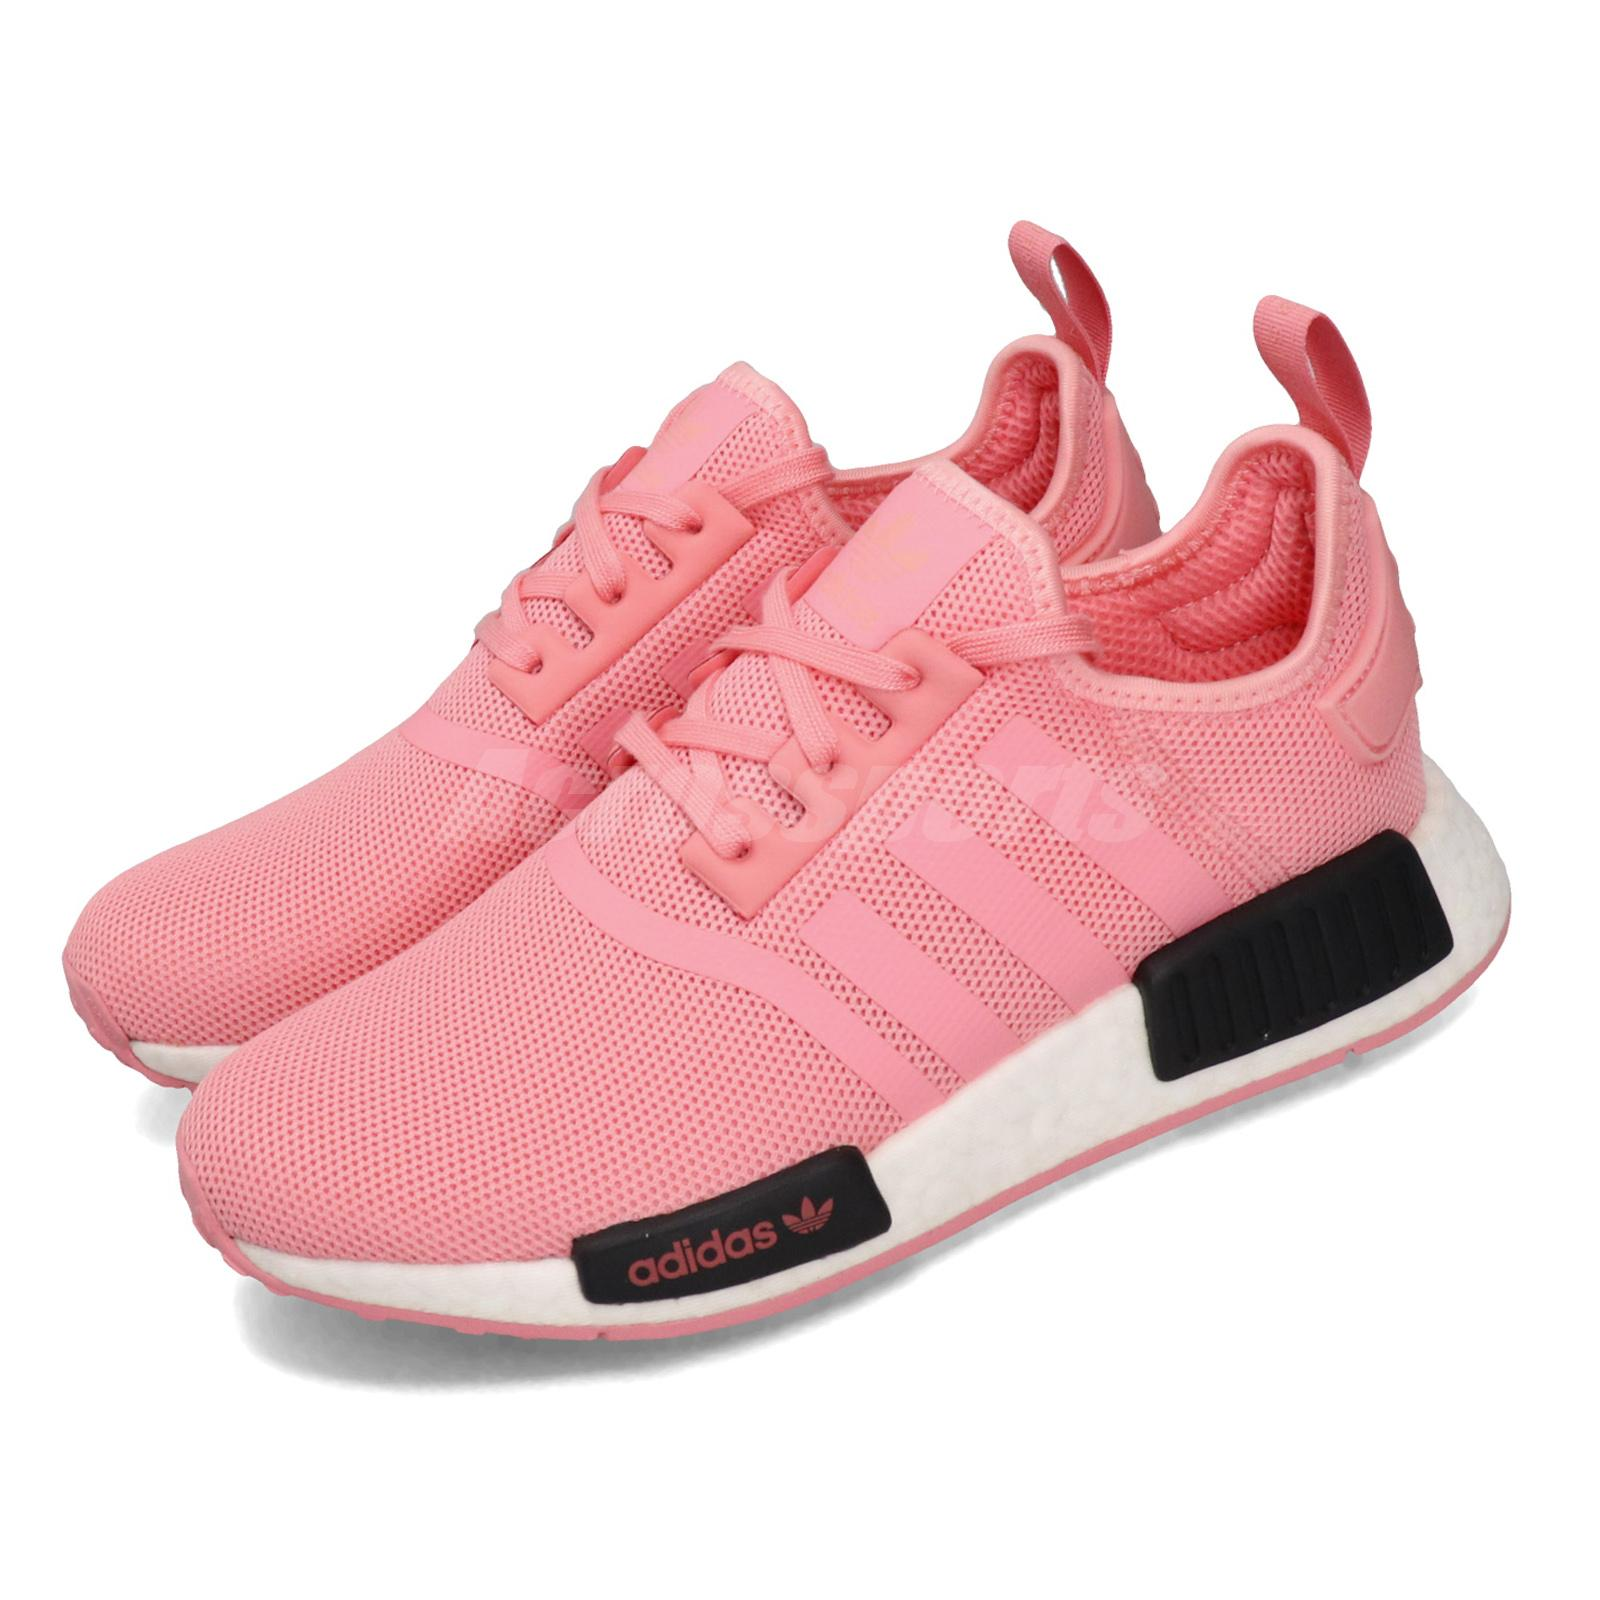 B42086 Youth Brand New Adidas NMD/_R1 Athletic Fashion Sneakers